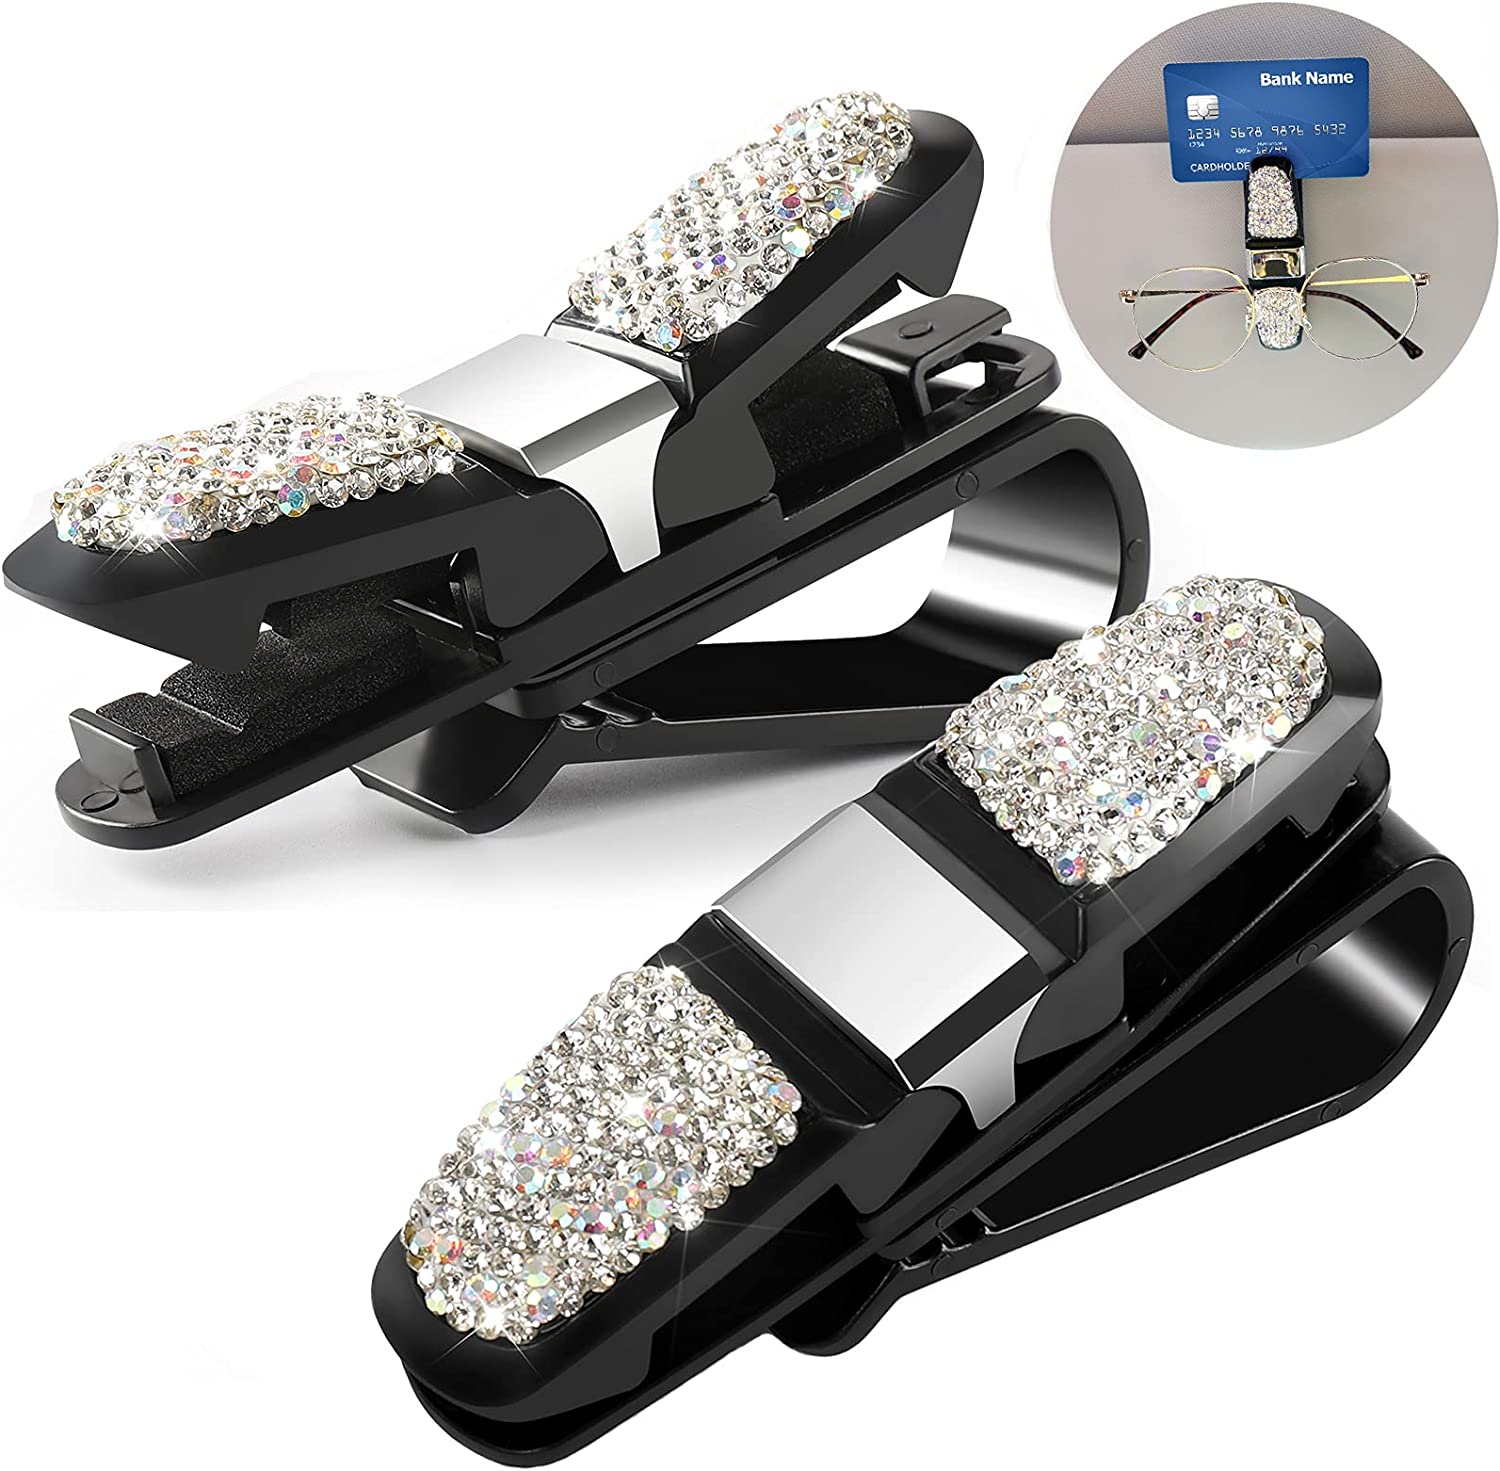 Accmor Bling Inventory cleanup selling sale Sunglasses Holder Clips for 35% OFF Visor 2 Car C Sun Pack